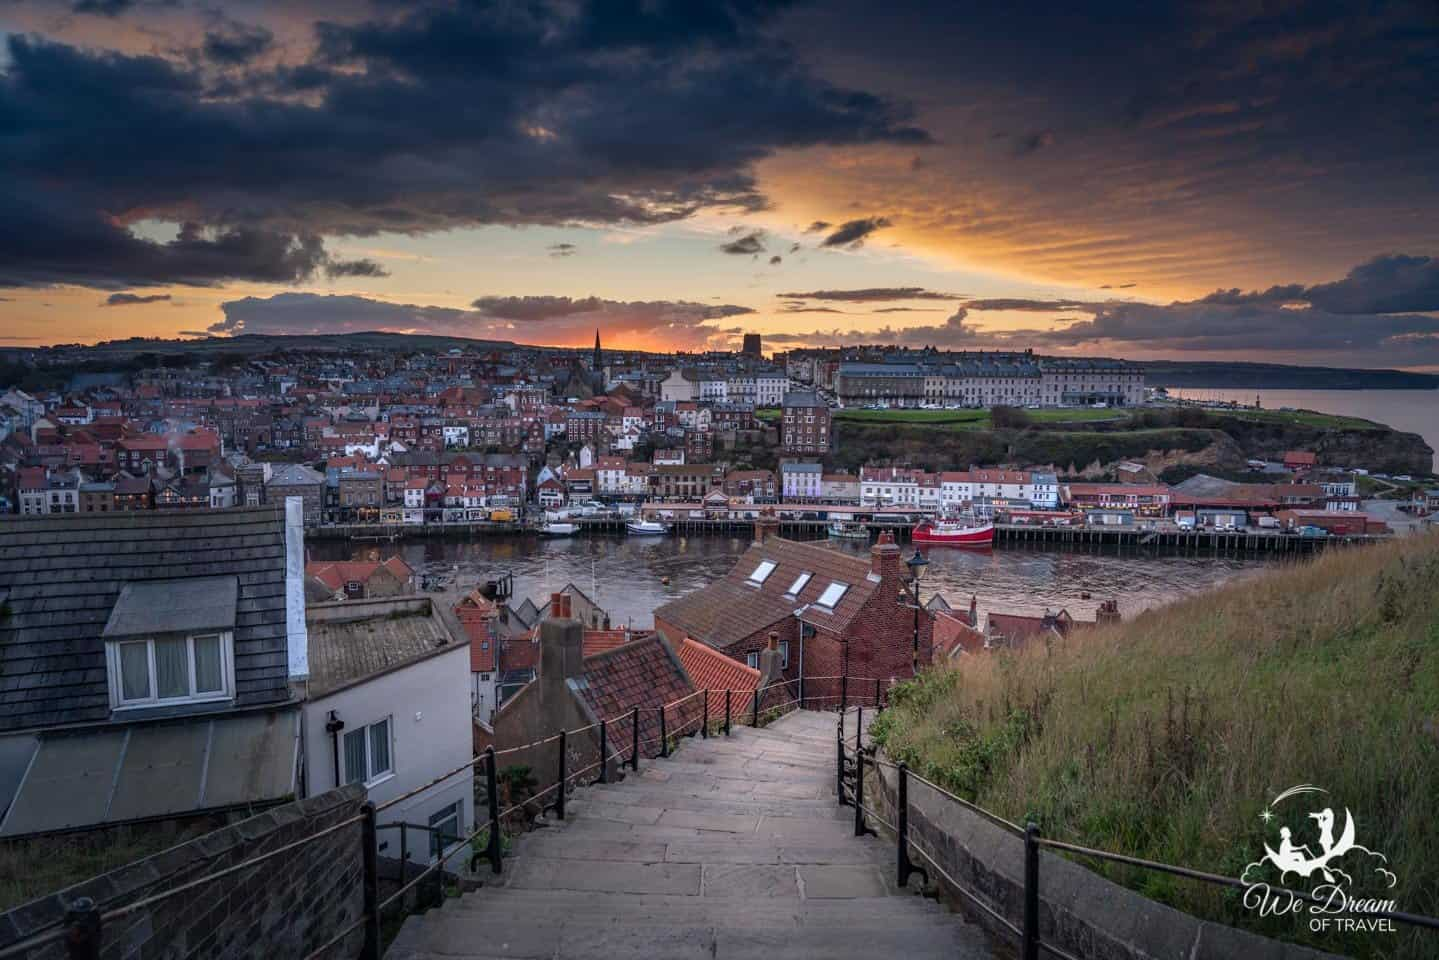 Sunset over Whitby from 199 Steps.